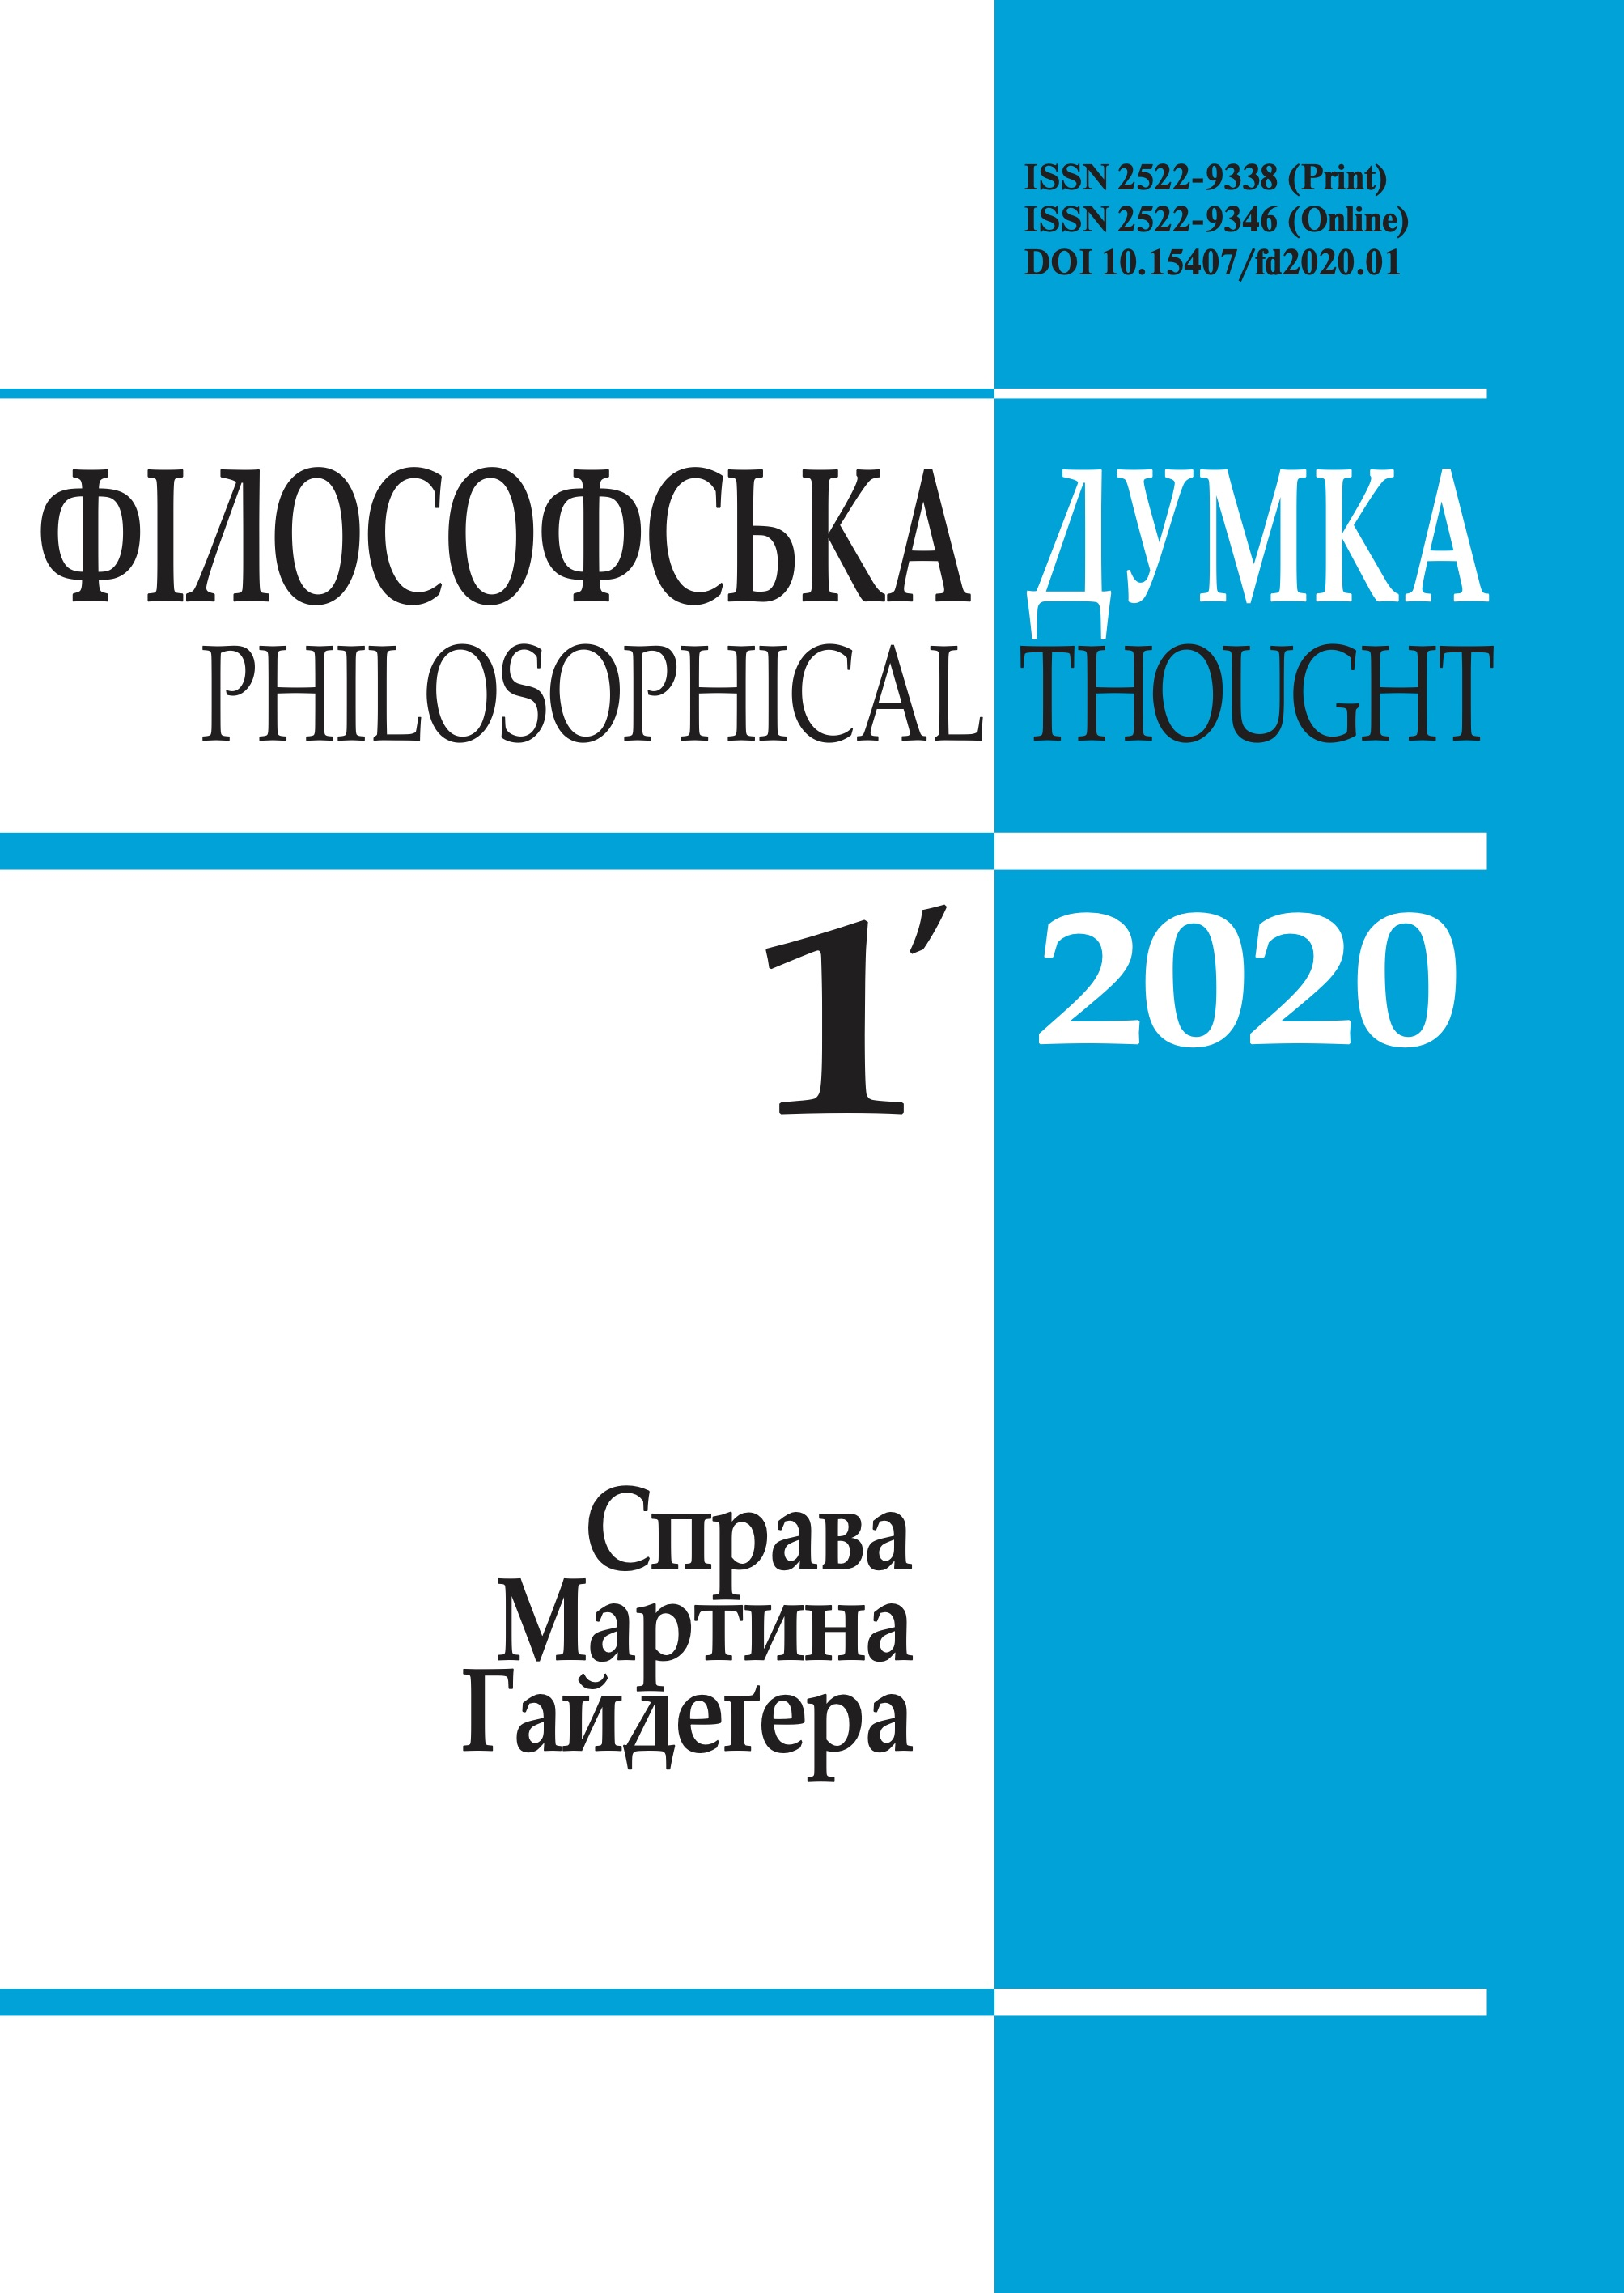 View No. 1 (2020): Philosophical thought